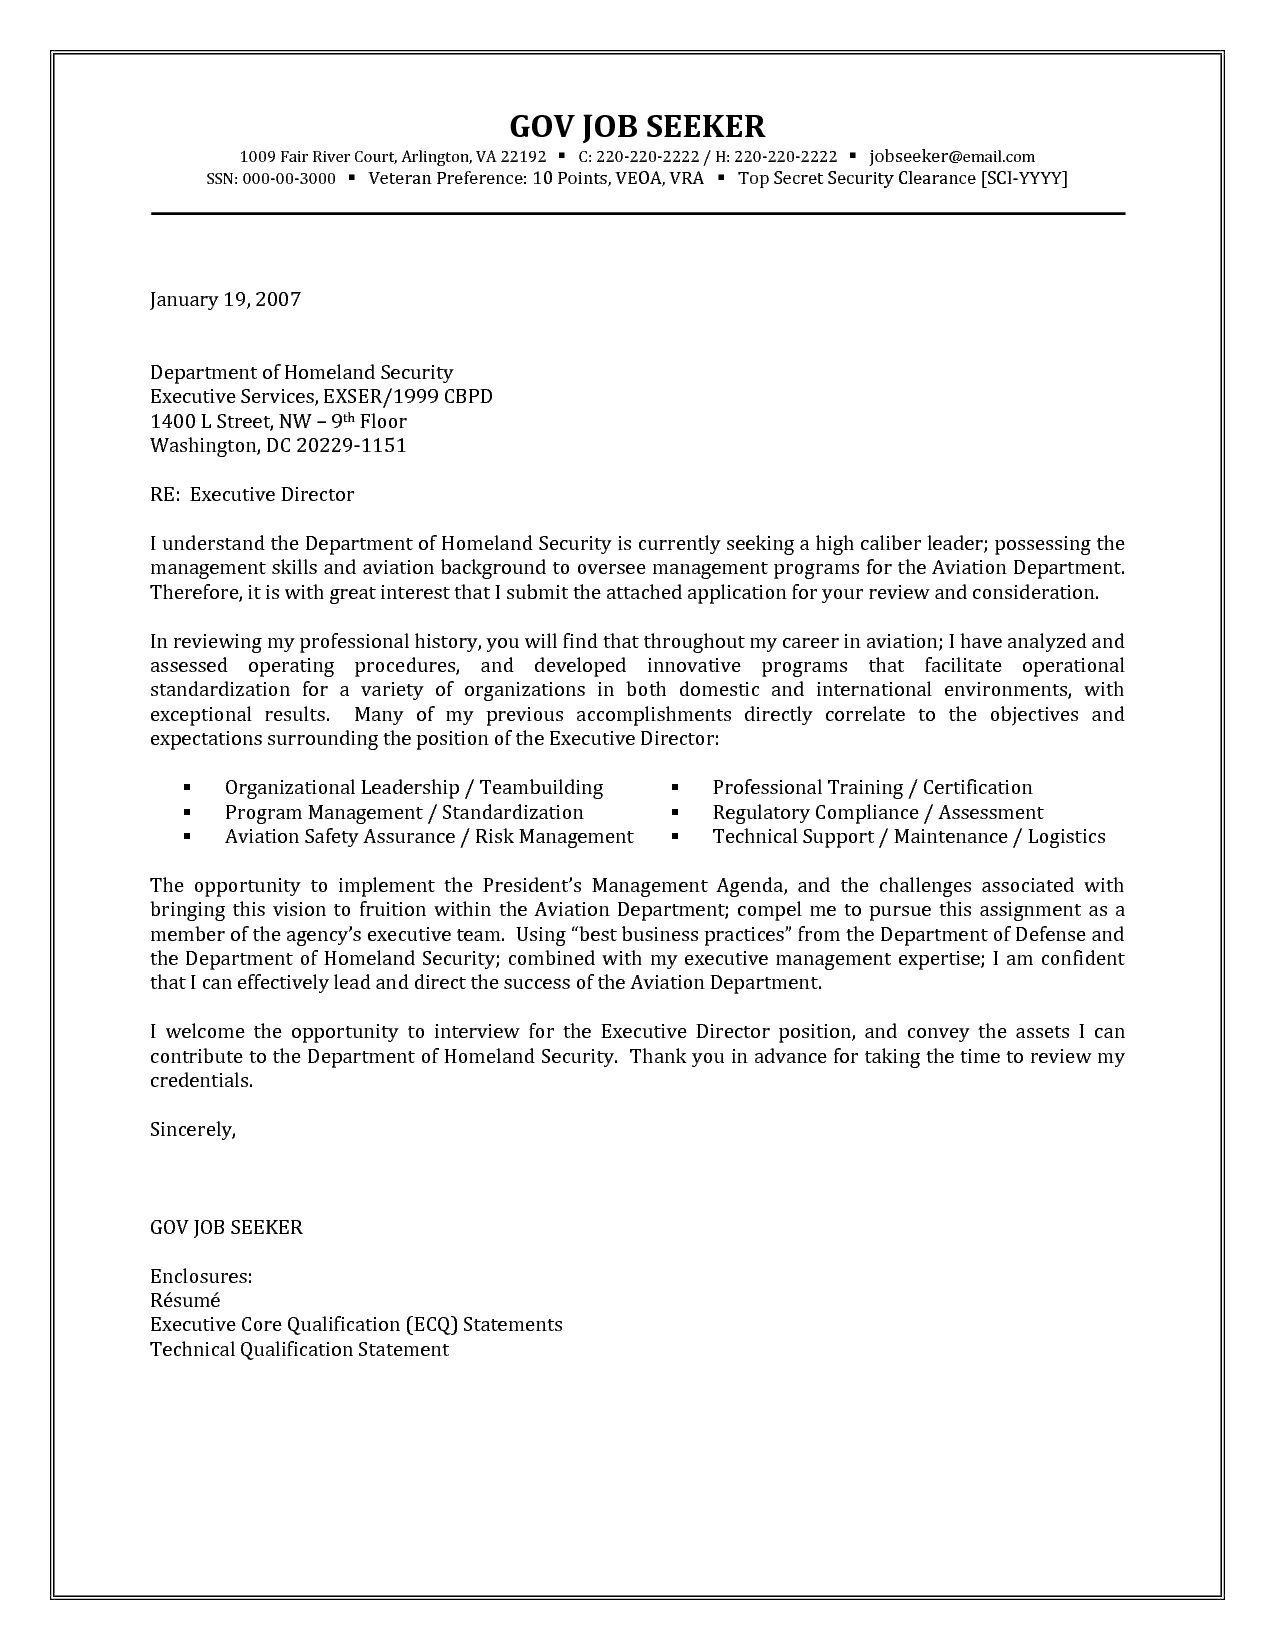 Government resume cover letter examples httpjobresumesample government resume cover letter examples httpjobresumesample99 spiritdancerdesigns